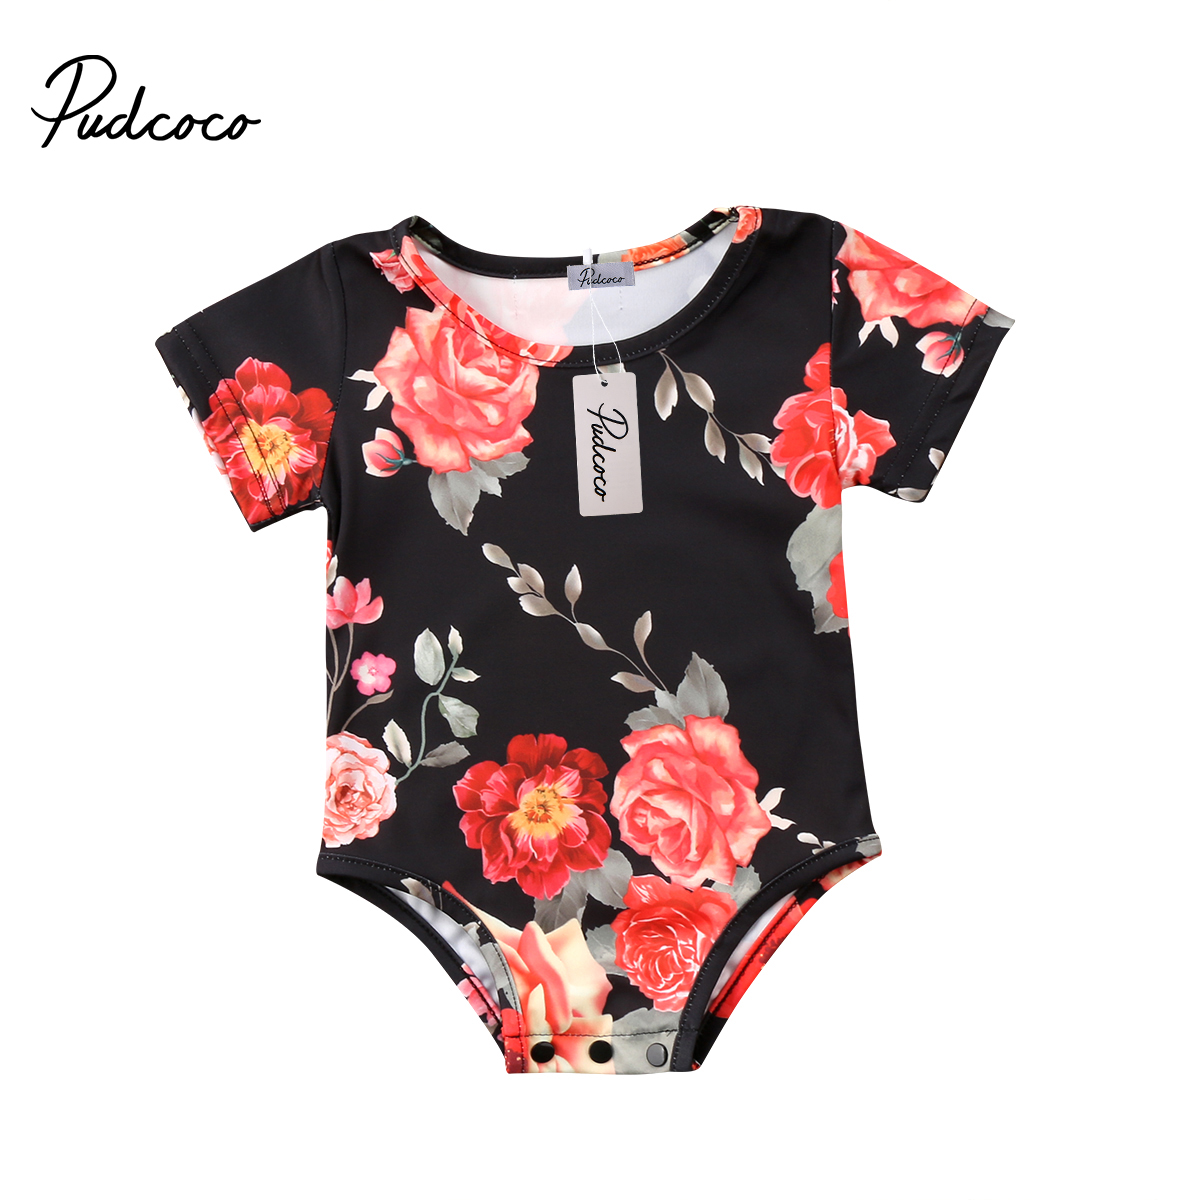 2018 Toddler Newborn Baby Girls Short Sleeve Floral Rompers Jumpsuit Playsuit One-Pieces Clothes Outfit Sunsuit